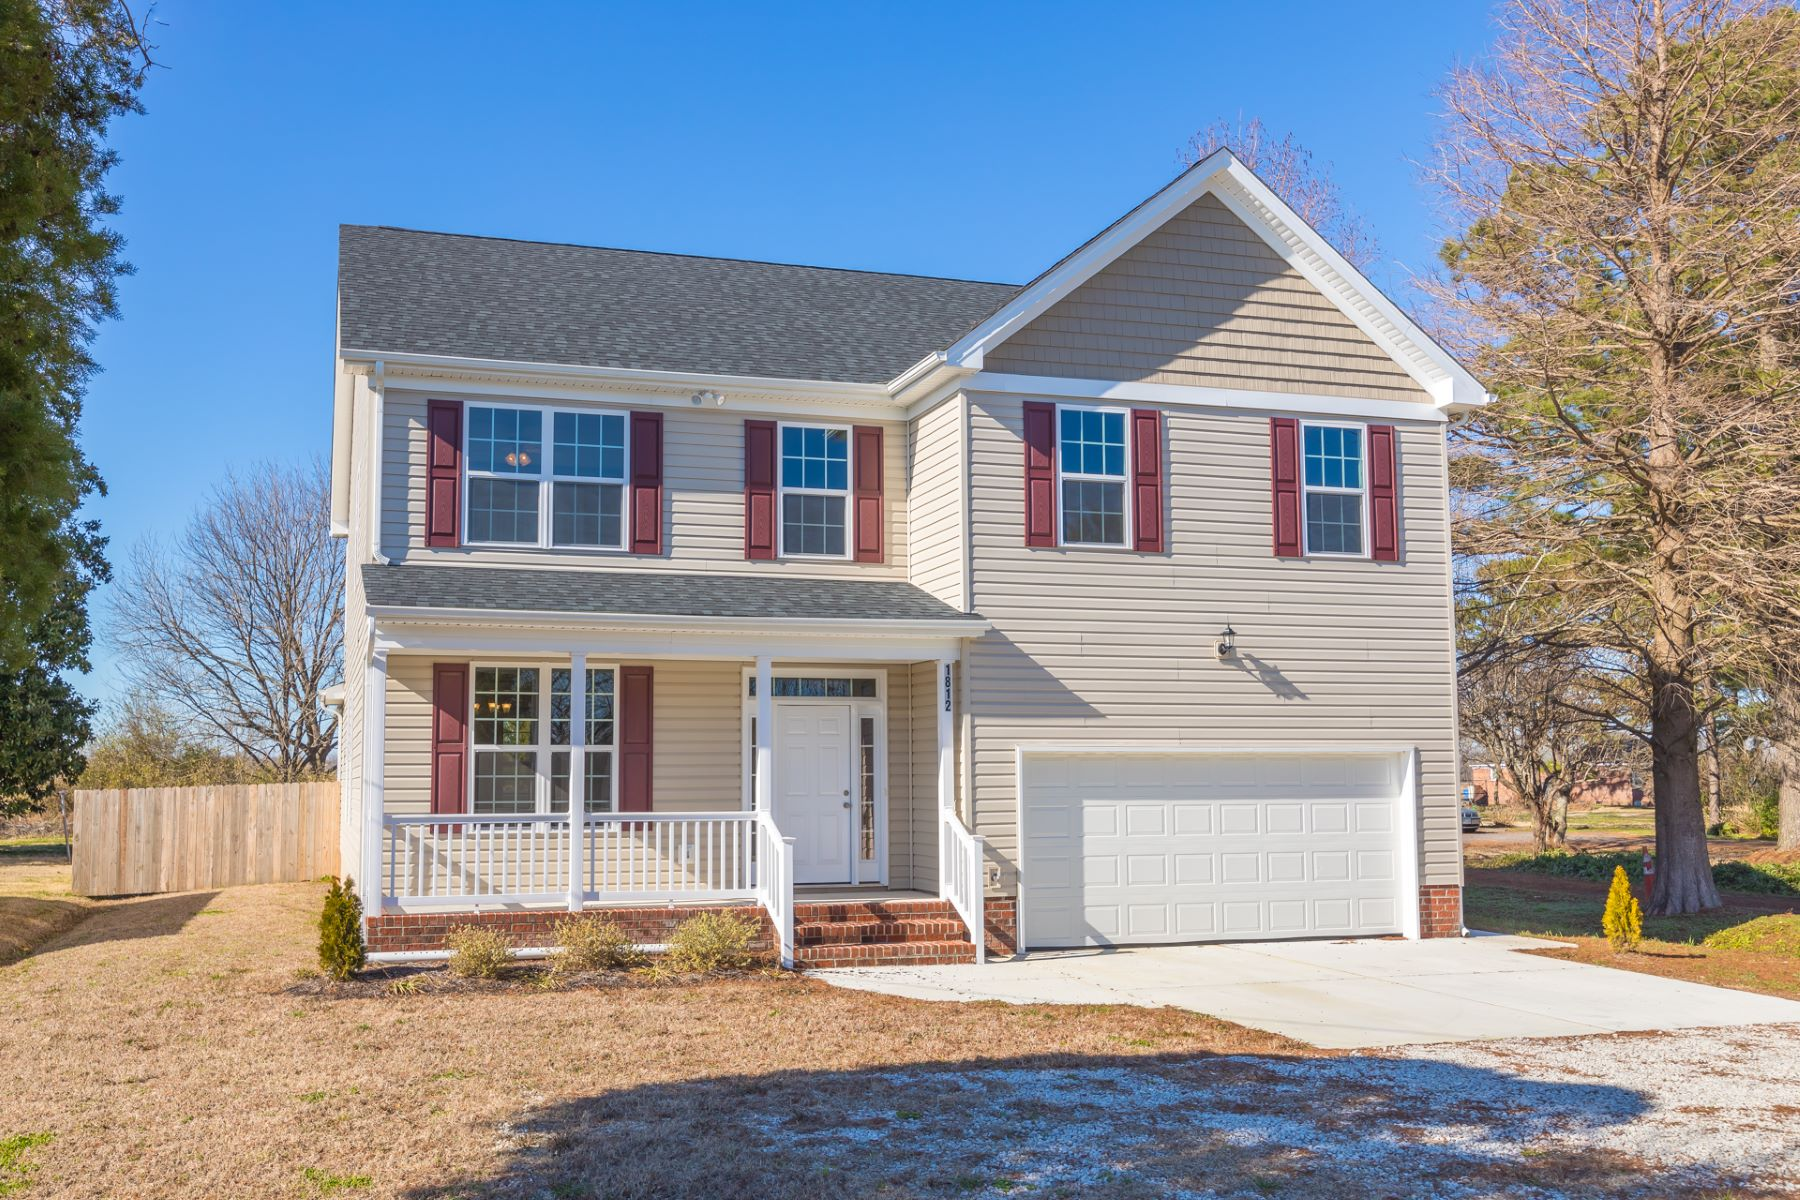 Single Family Homes for Sale at Hickory 1812 Long Ridge Road Chesapeake, Virginia 23322 United States